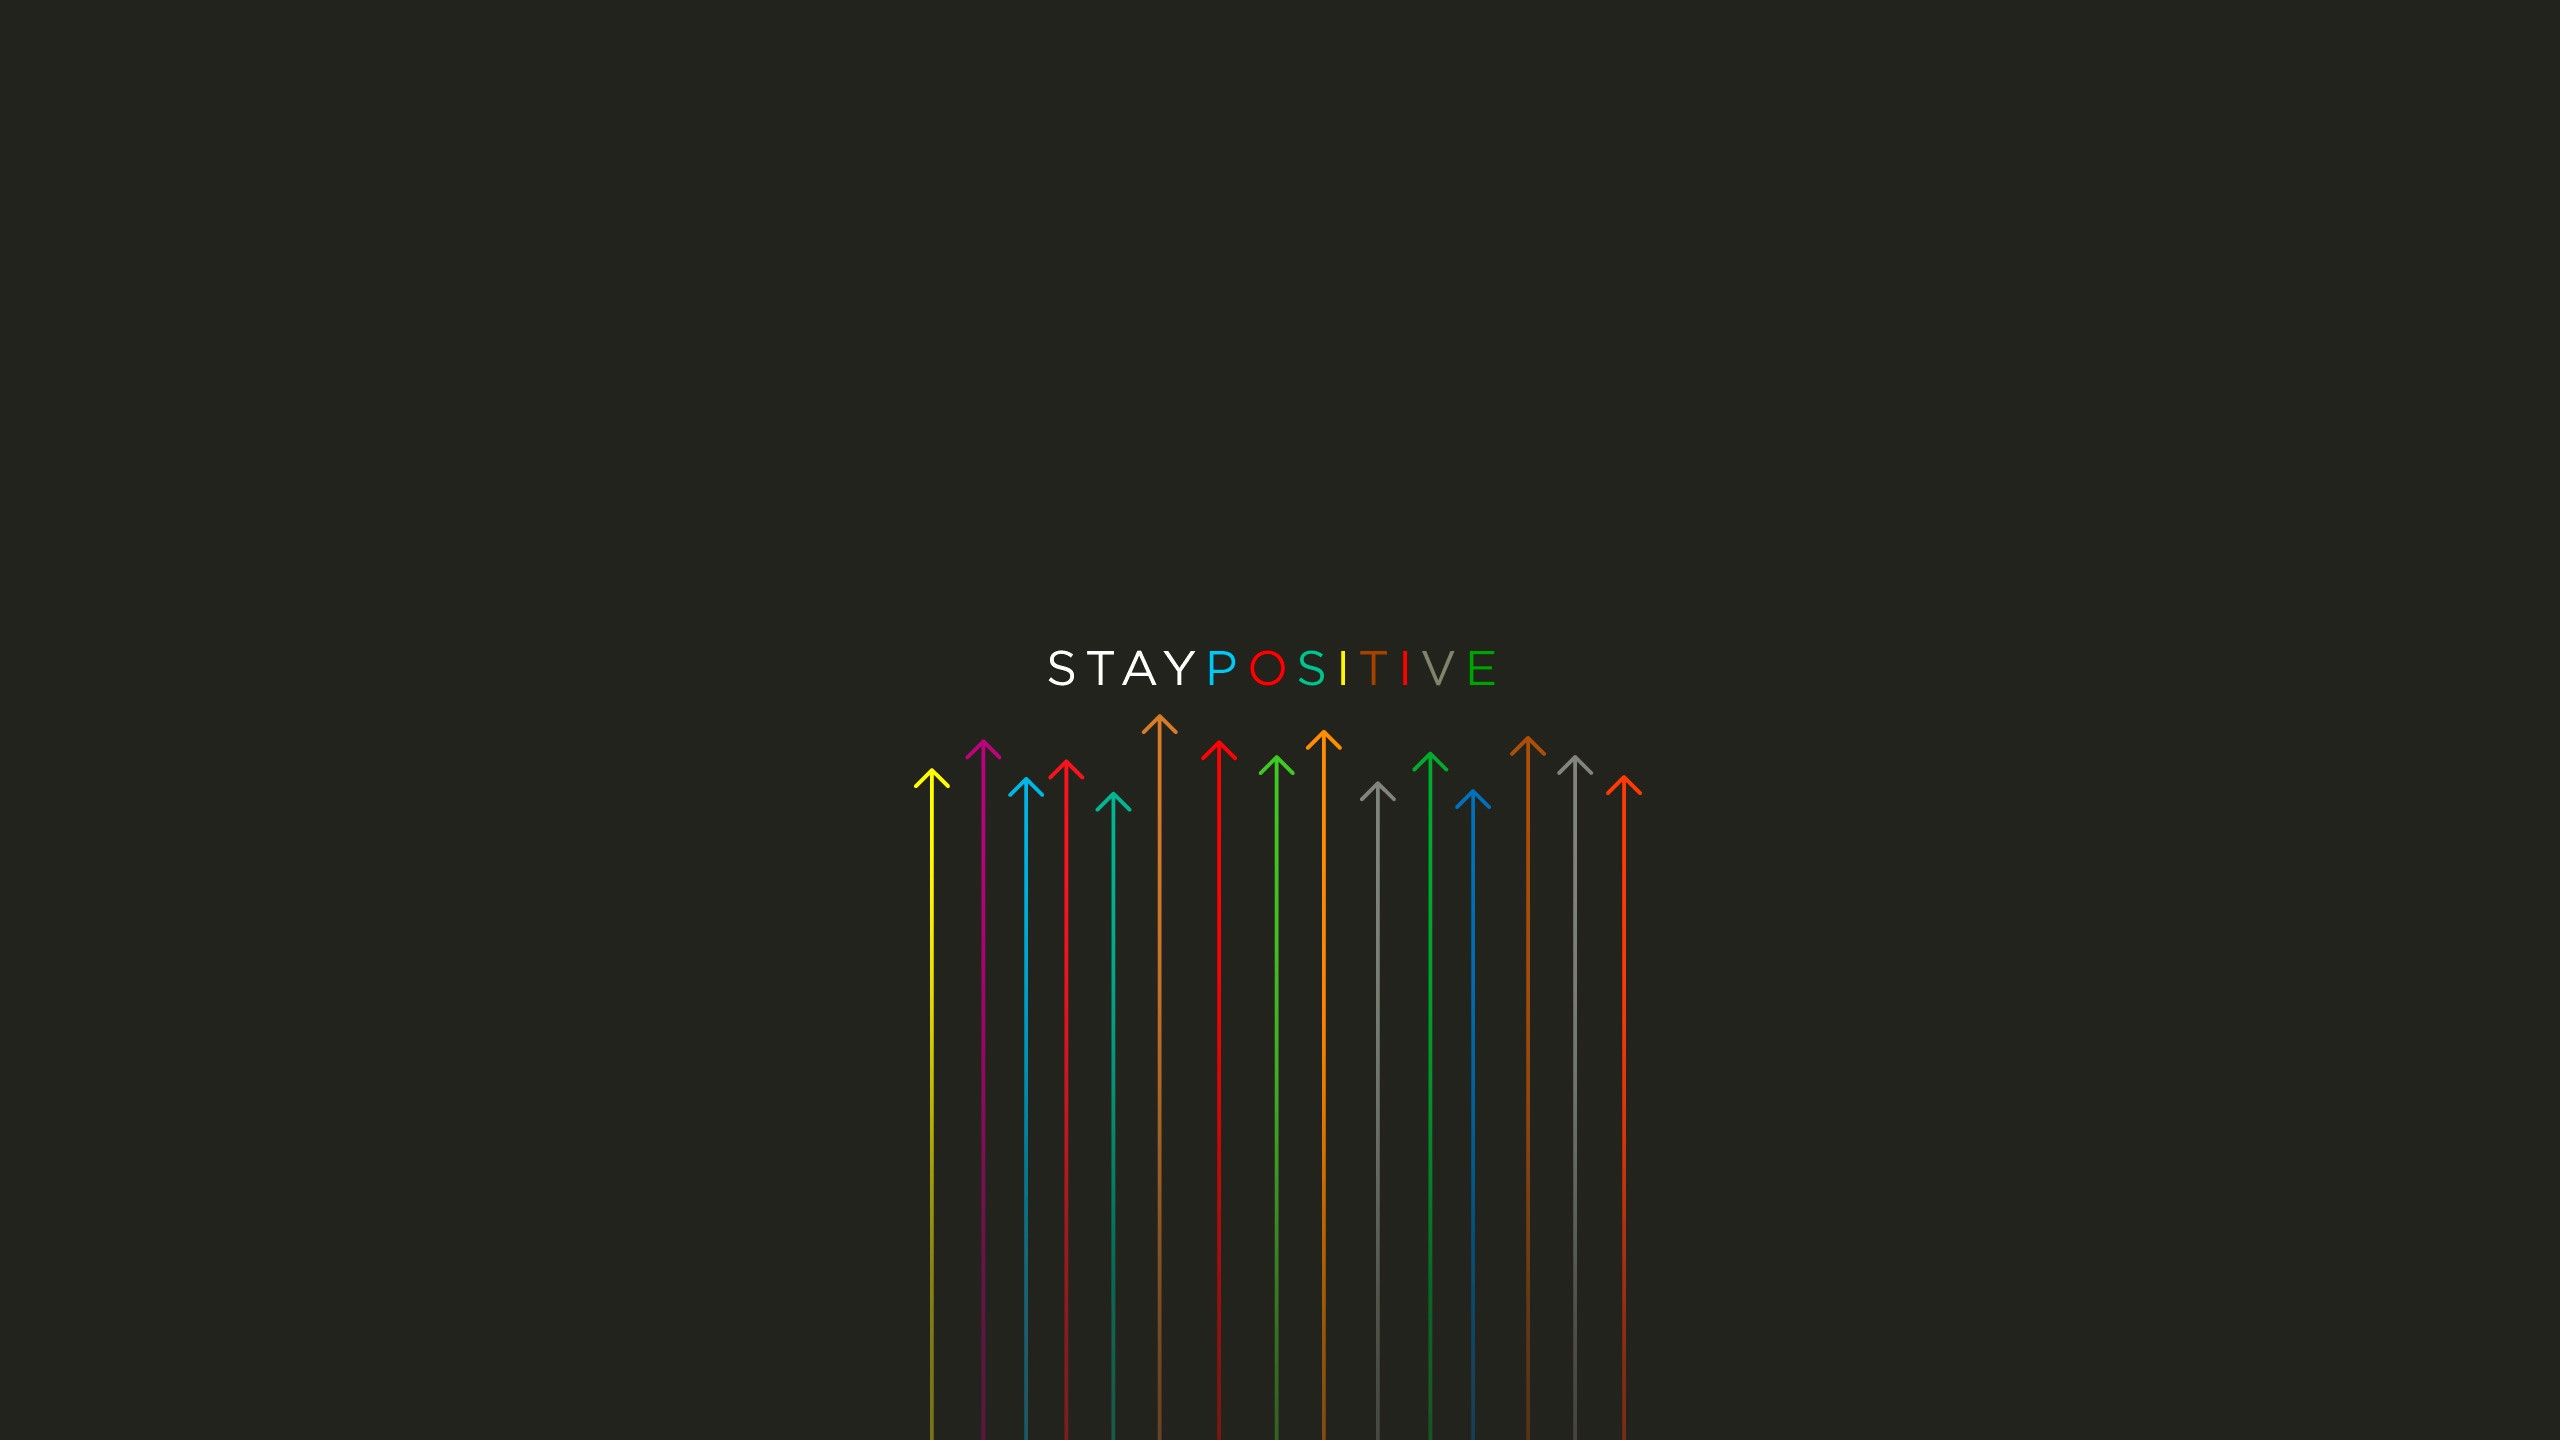 Stay Positive Quote Hd Wallpaper Quotes Buzz Uploads